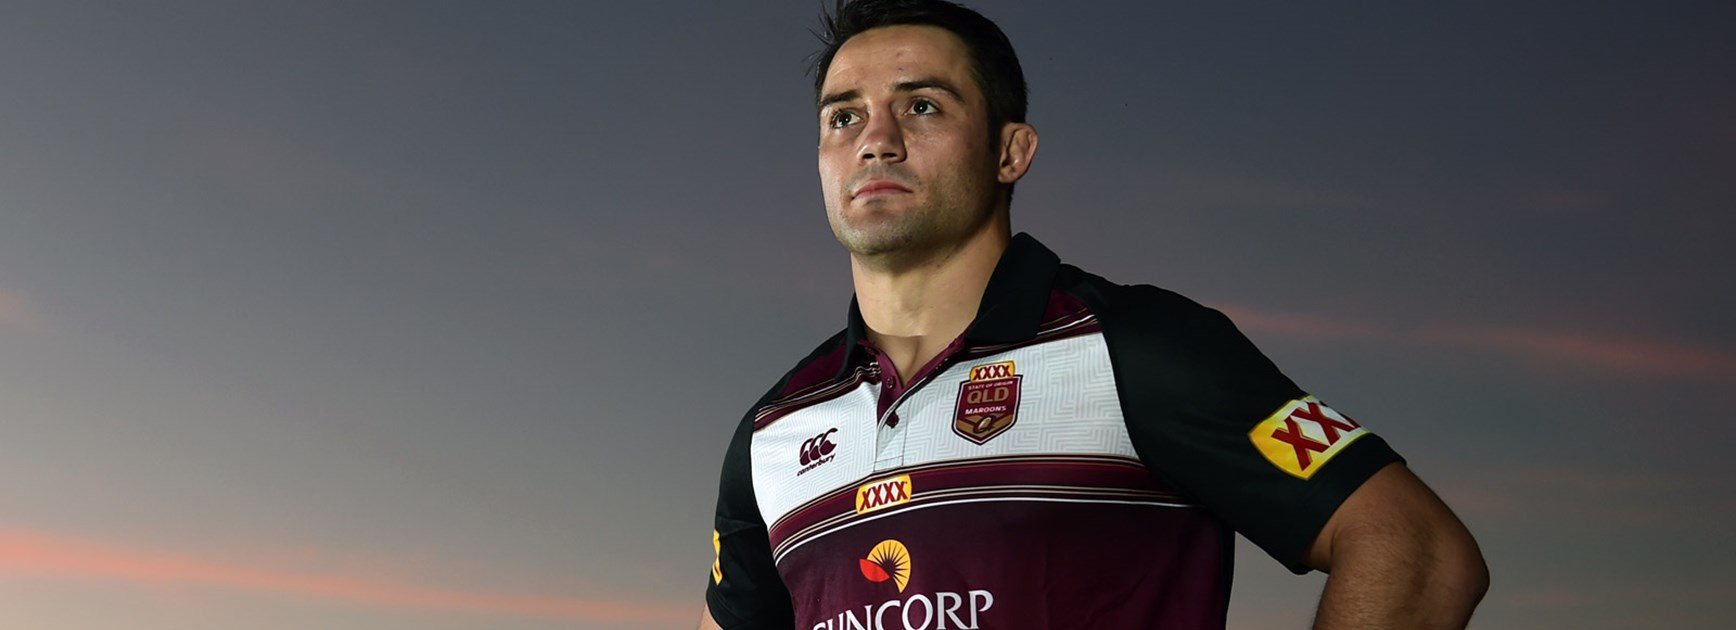 Queensland halfback Cooper Cronk will start in Game One of the 2016 Holden State of Origin series.